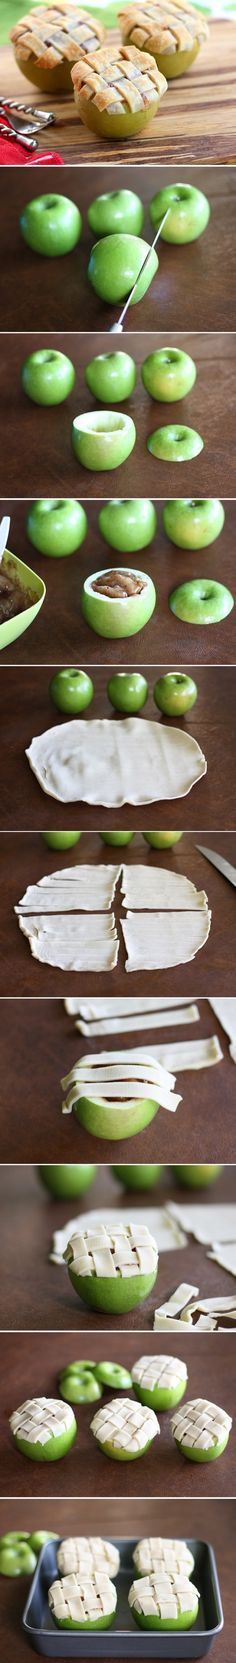 Baked Apple Pies in Apples /explore/fall/ /explore/party/ /search/?q=%23foodstyling&rs=hashtag